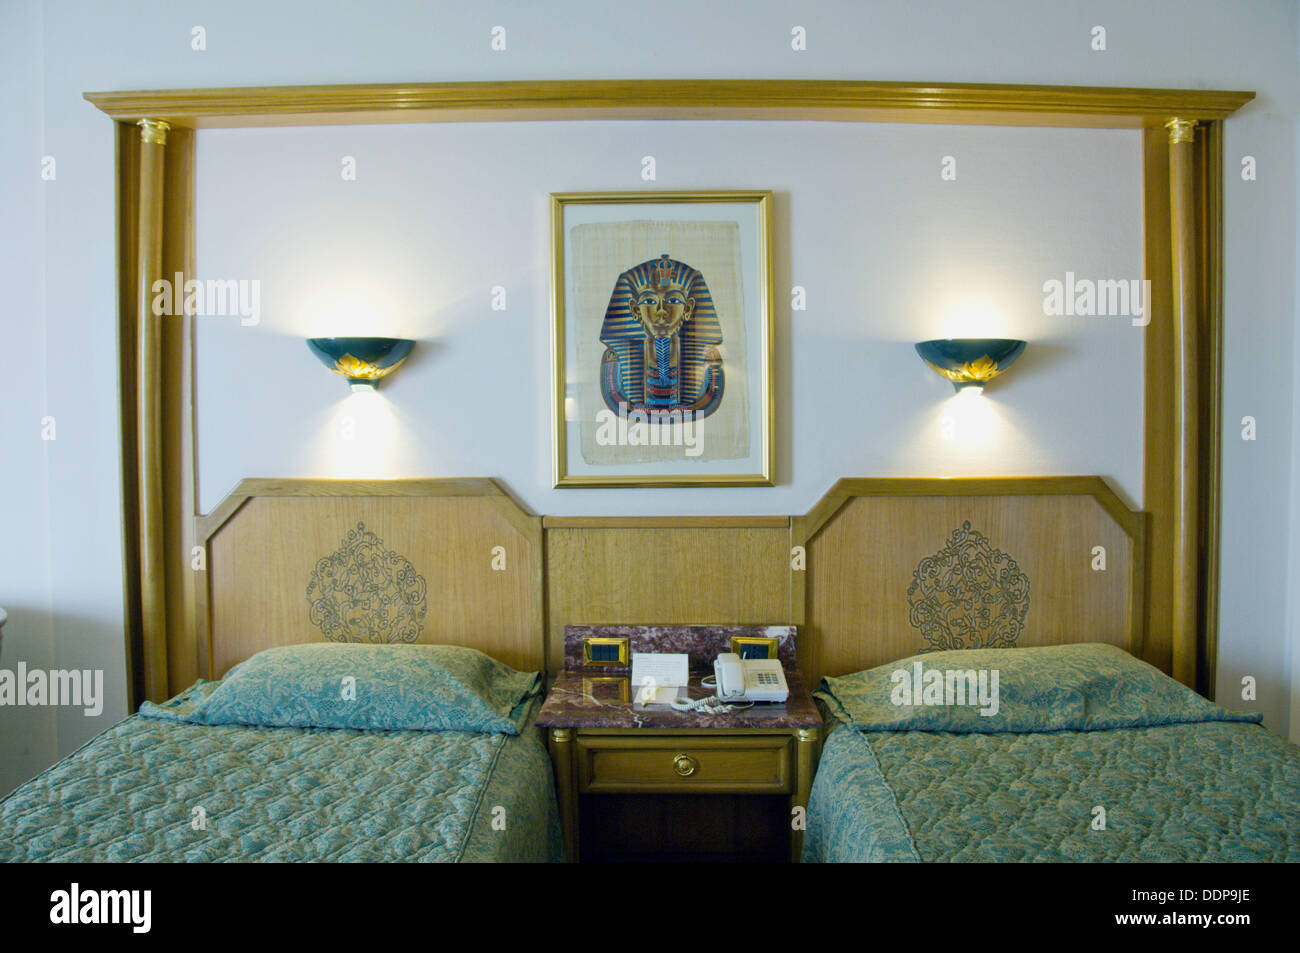 Egyptian Bed Stock Photos Amp Egyptian Bed Stock Images